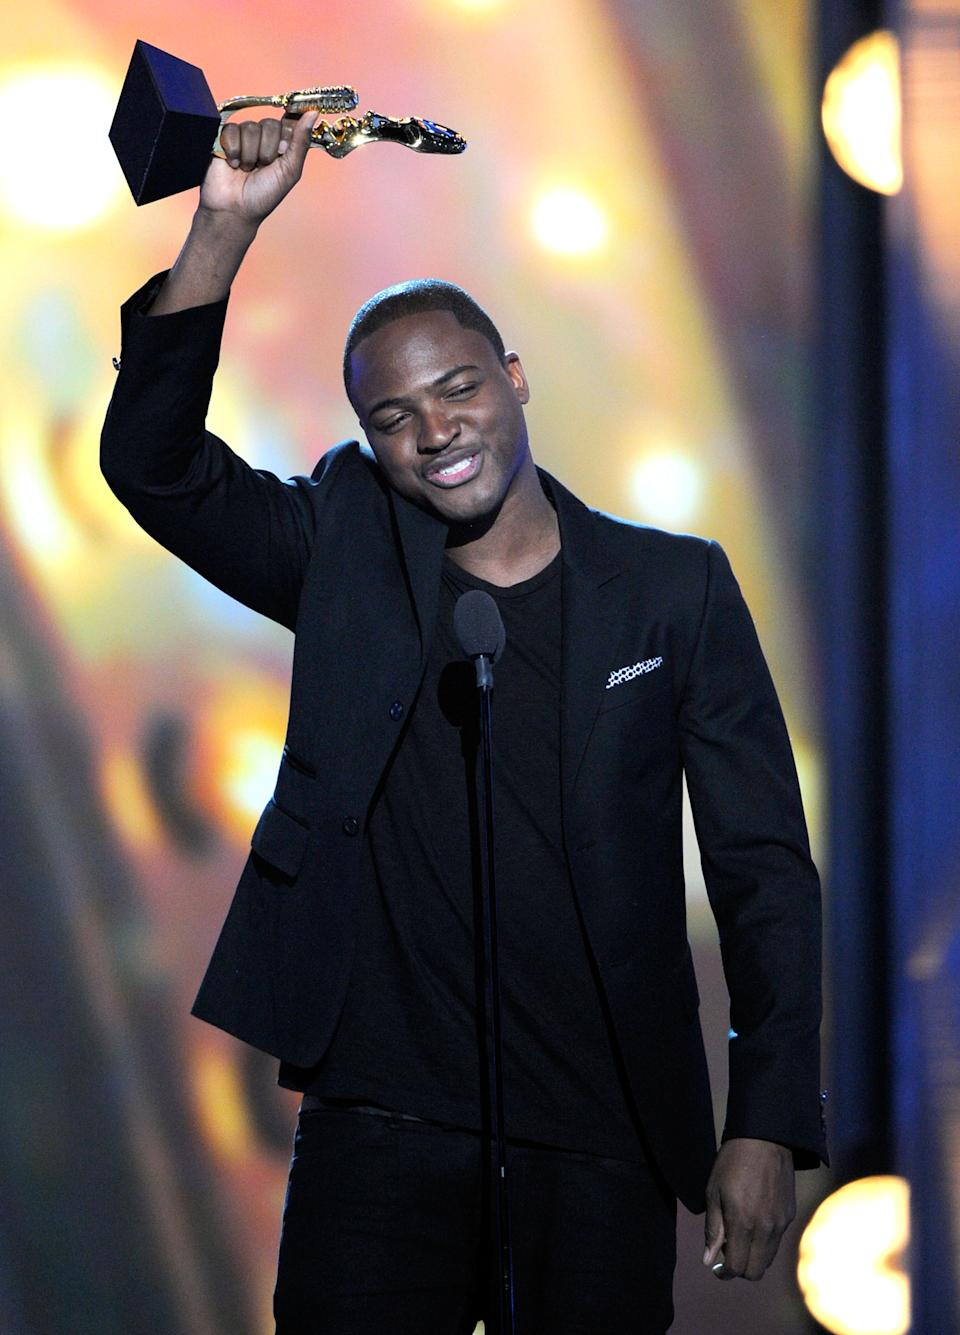 Taio Cruz accepts the Hot 100 Song of the Year award onstage during the 2011 Billboard Music Awards at the MGM Grand Garden Arena May 22, 2011 in Las Vegas, Nevada.  (Photo by Ethan Miller/Getty Images for ABC)